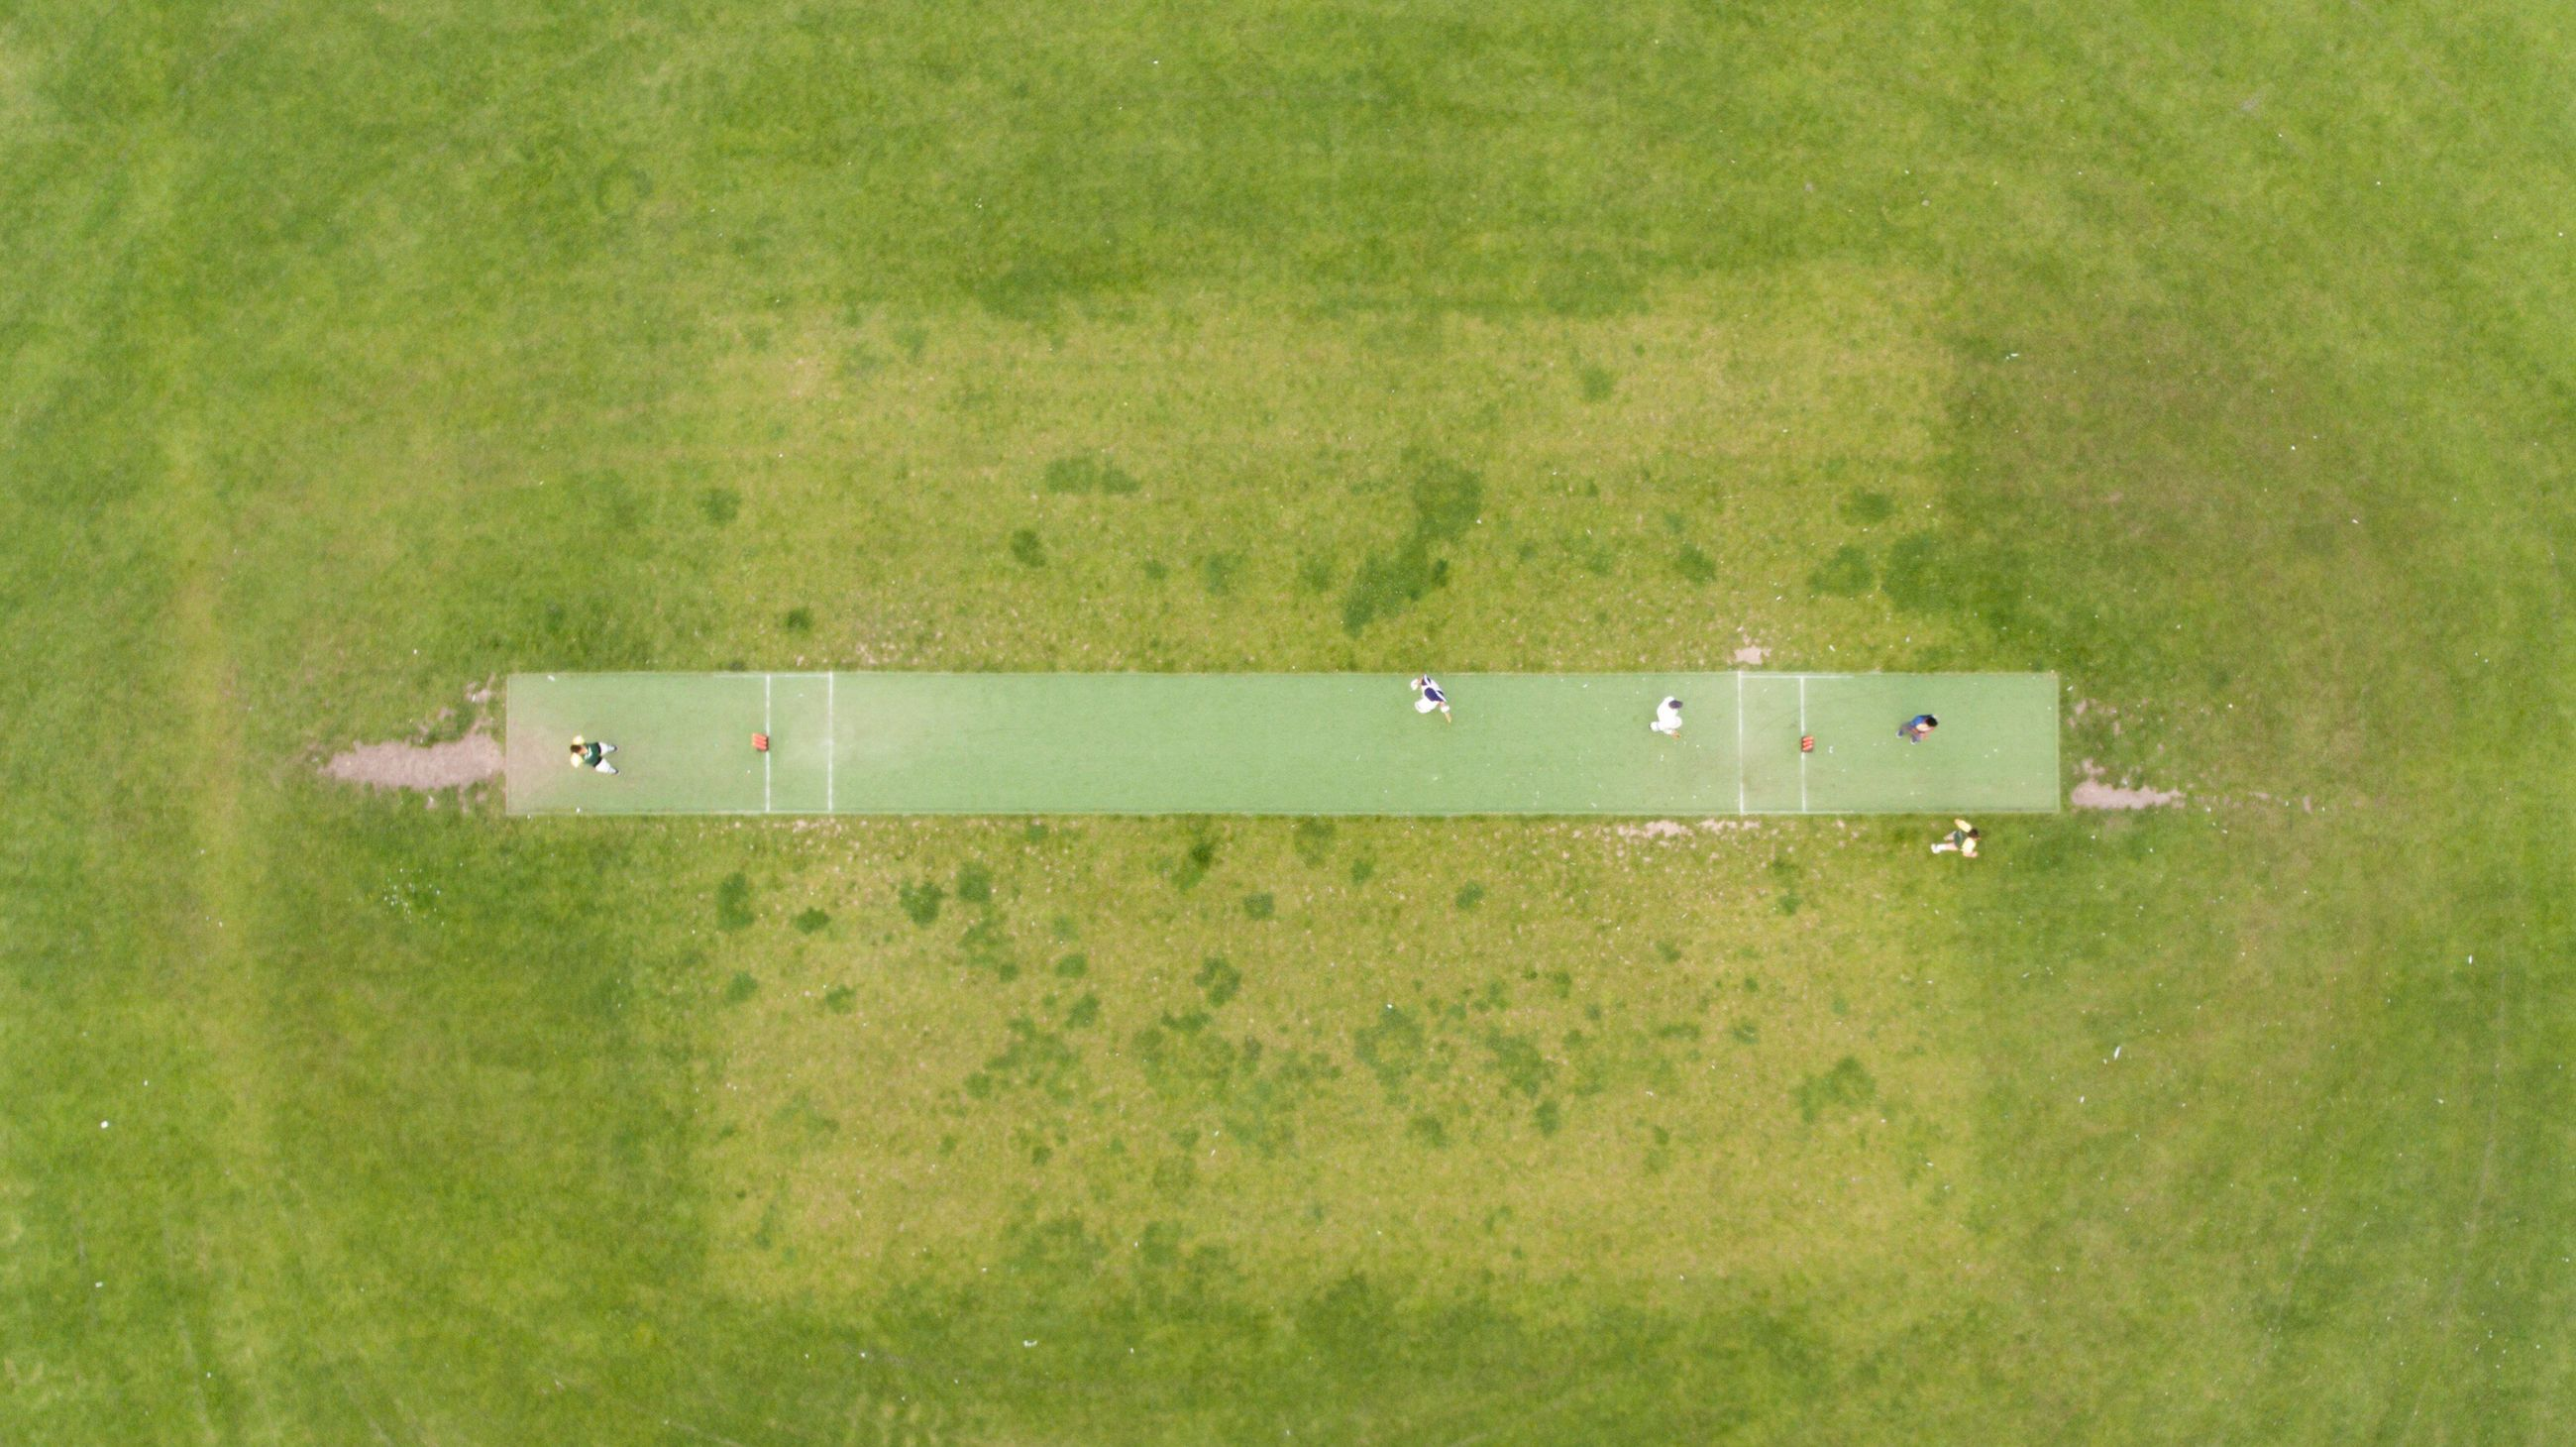 playing field, sport, no people, grass, outdoors, day